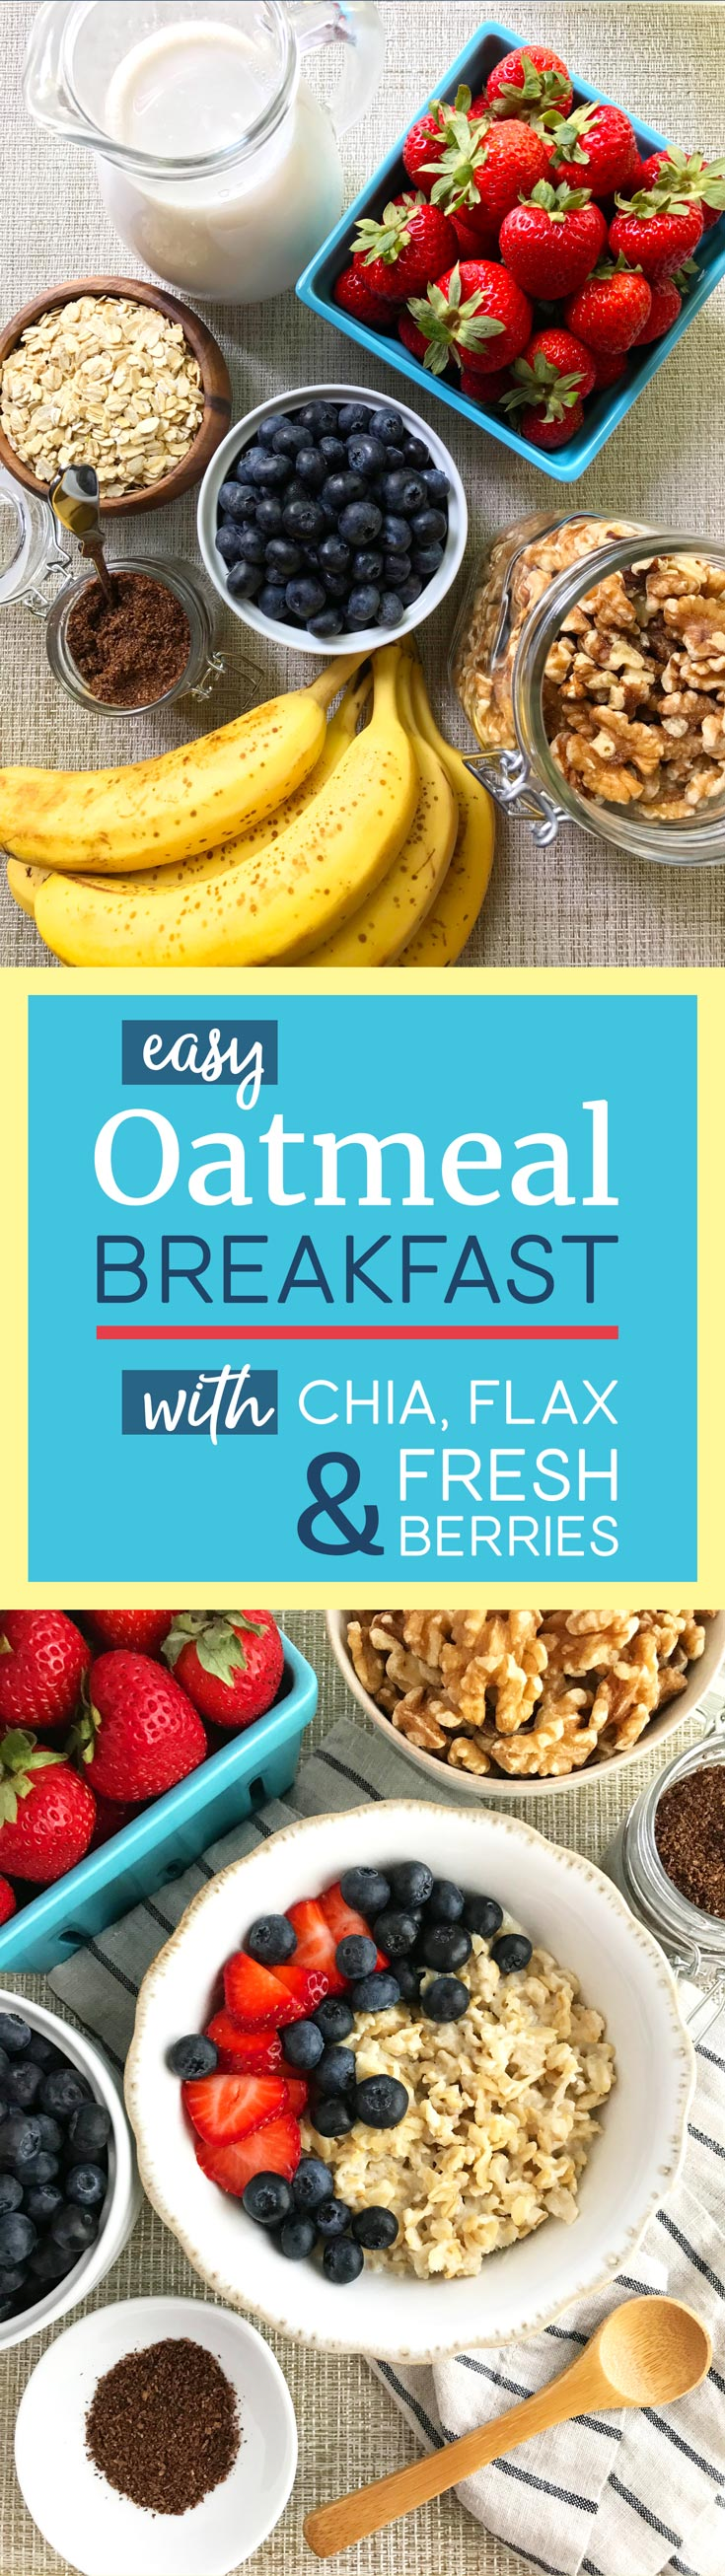 An easy oatmeal breakfast recipe with a ground chia flaxseed blend and fresh berries. Both delicious and heart healthy! #oatmeal #easybreakfast #healthybreakfast #findingveggiejoy